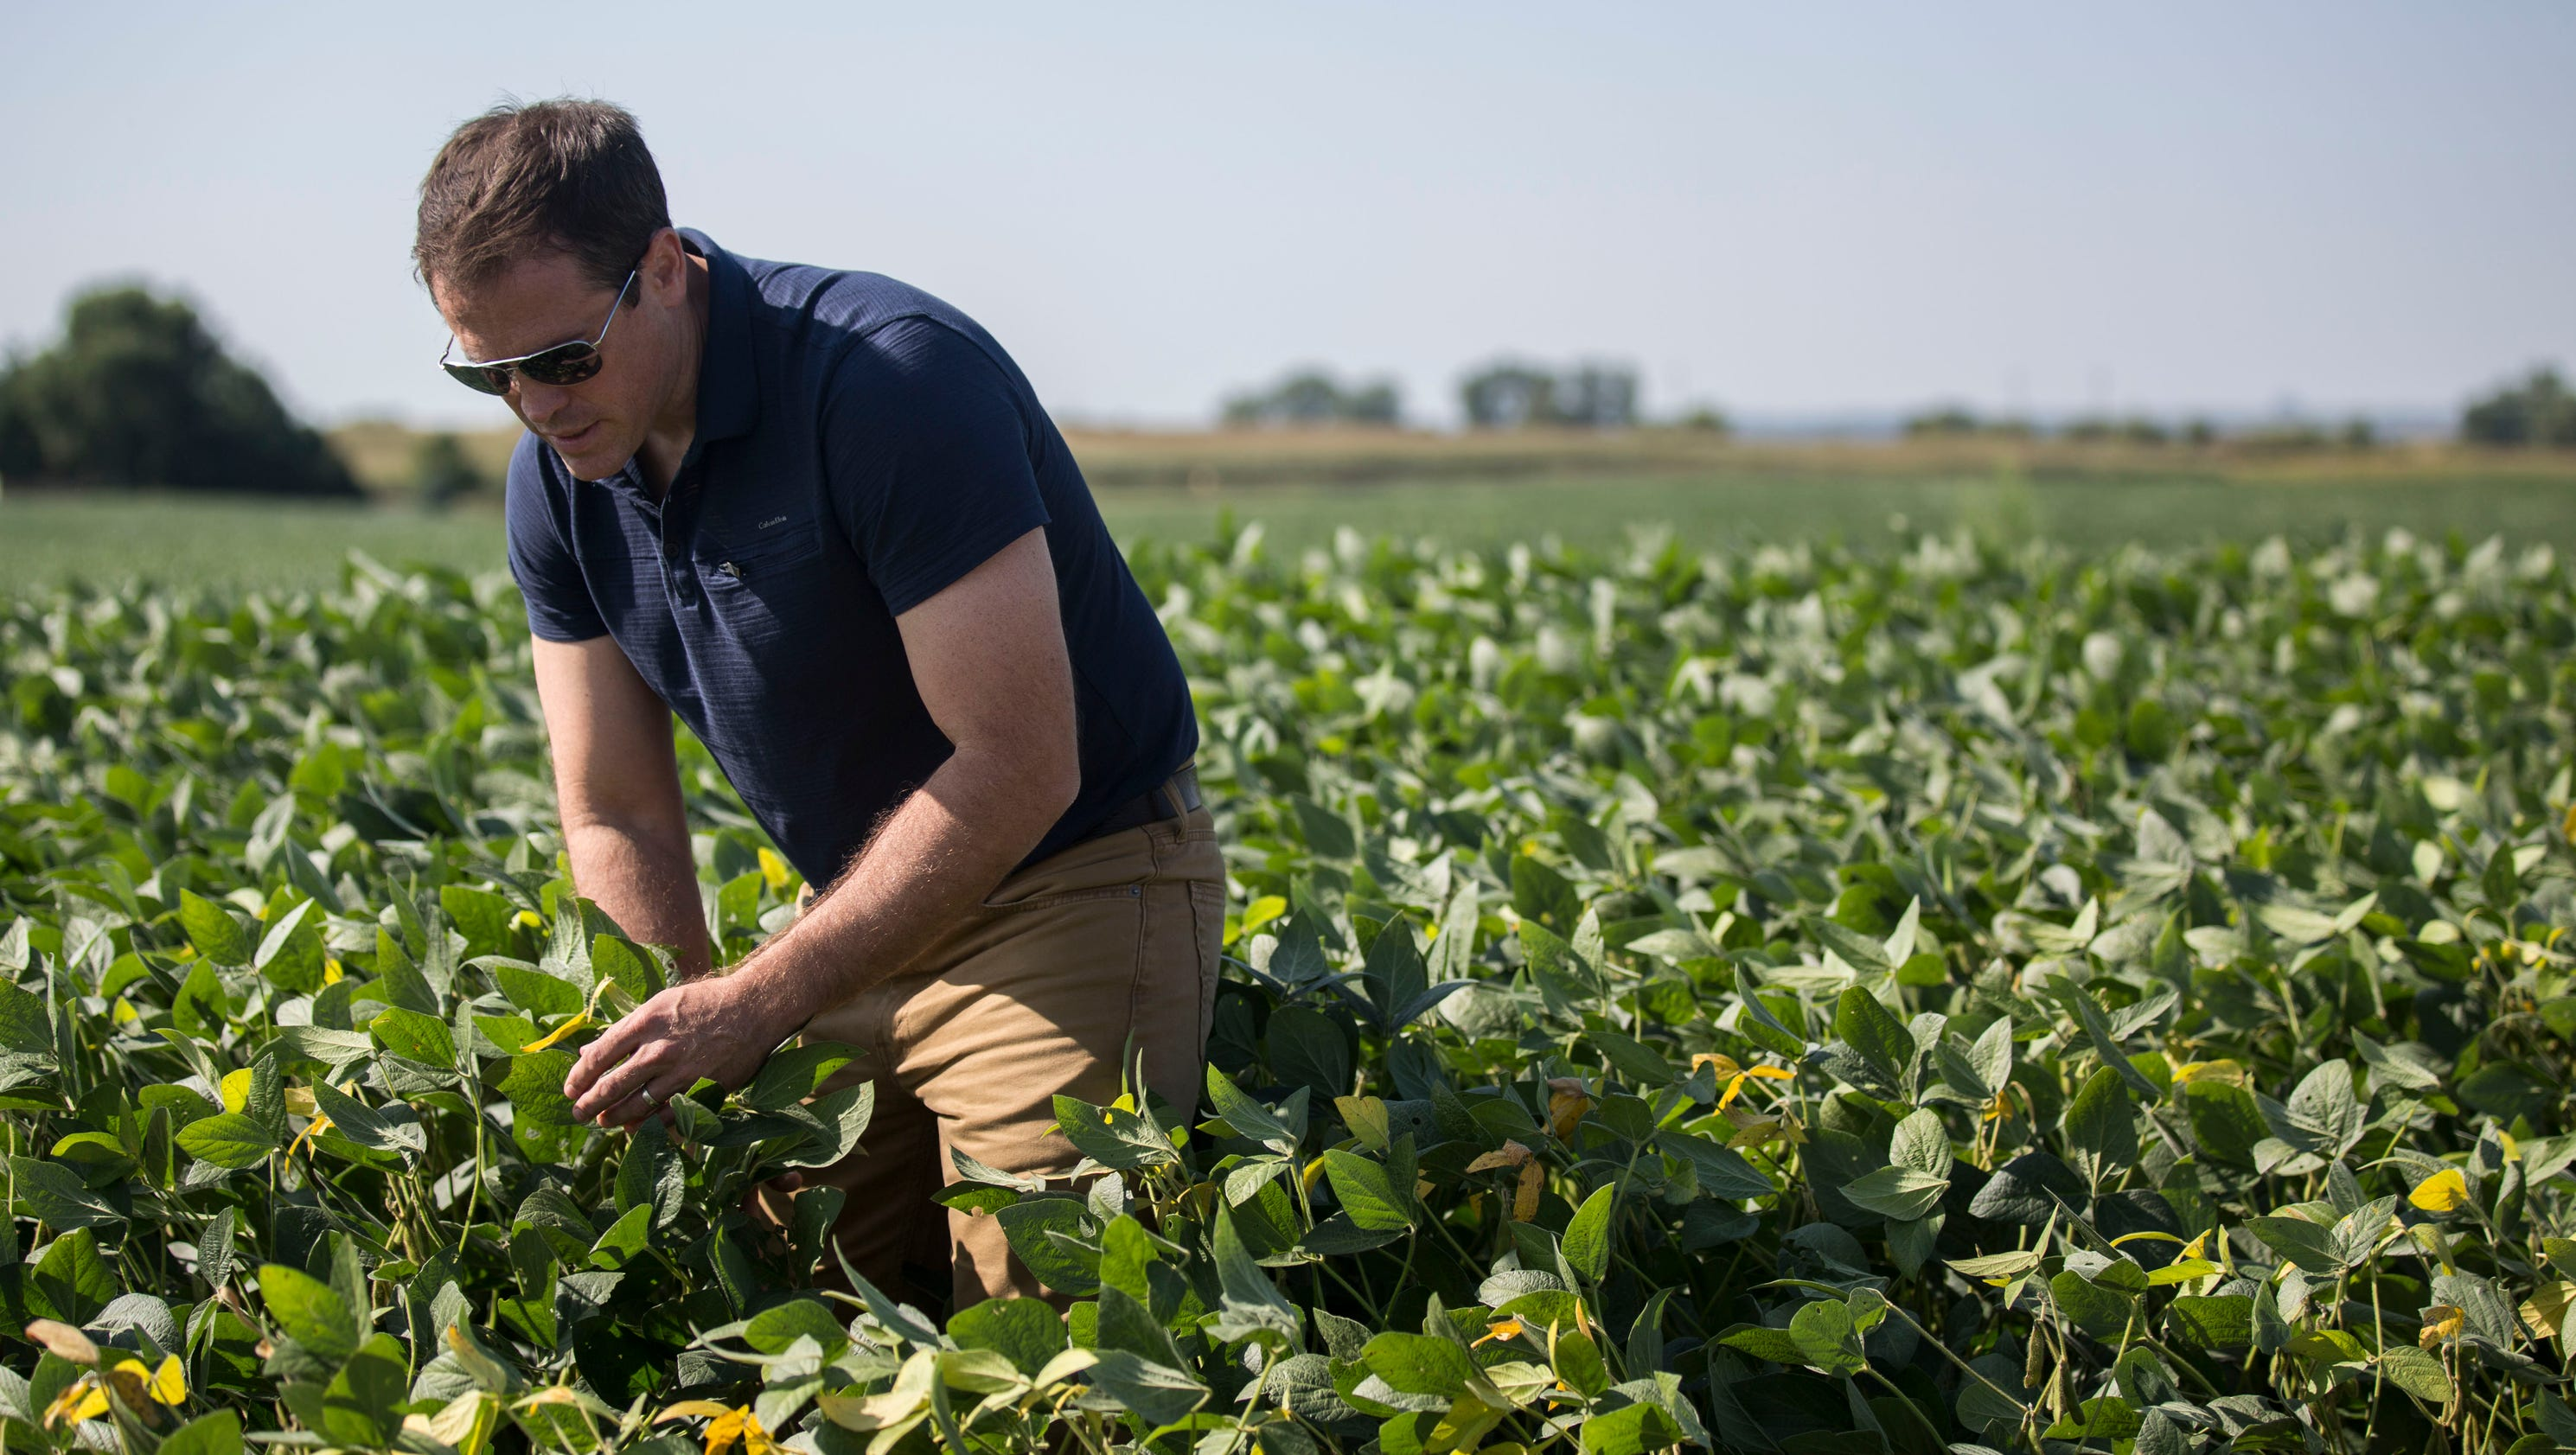 Local farmers concerned about impact of tariffs - News